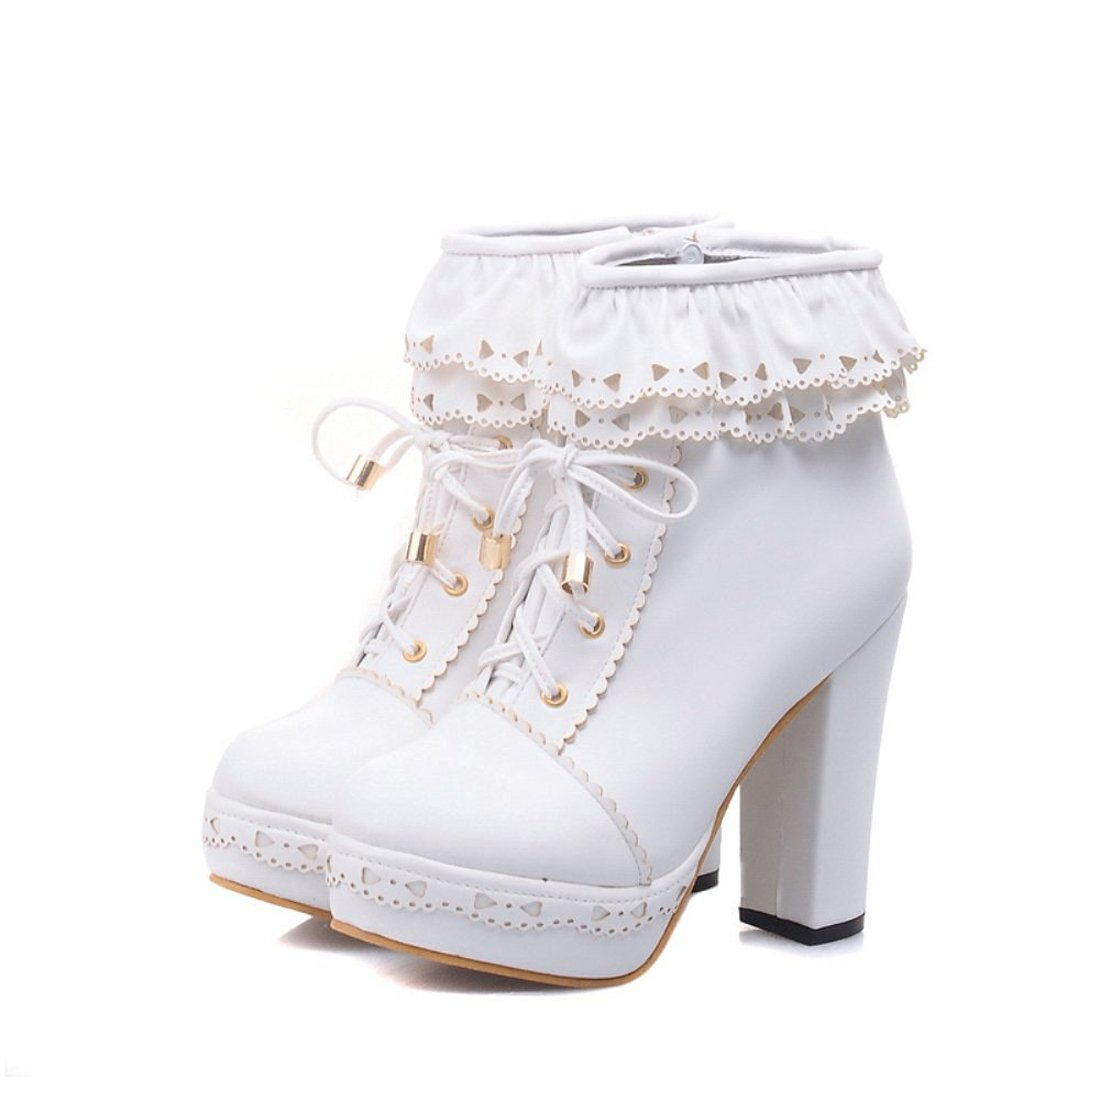 Susanny Womens Office Party Sweet Lolita Platform Chunky High Heel PU Lace up White Ankle Boots 8.5 B (M) US